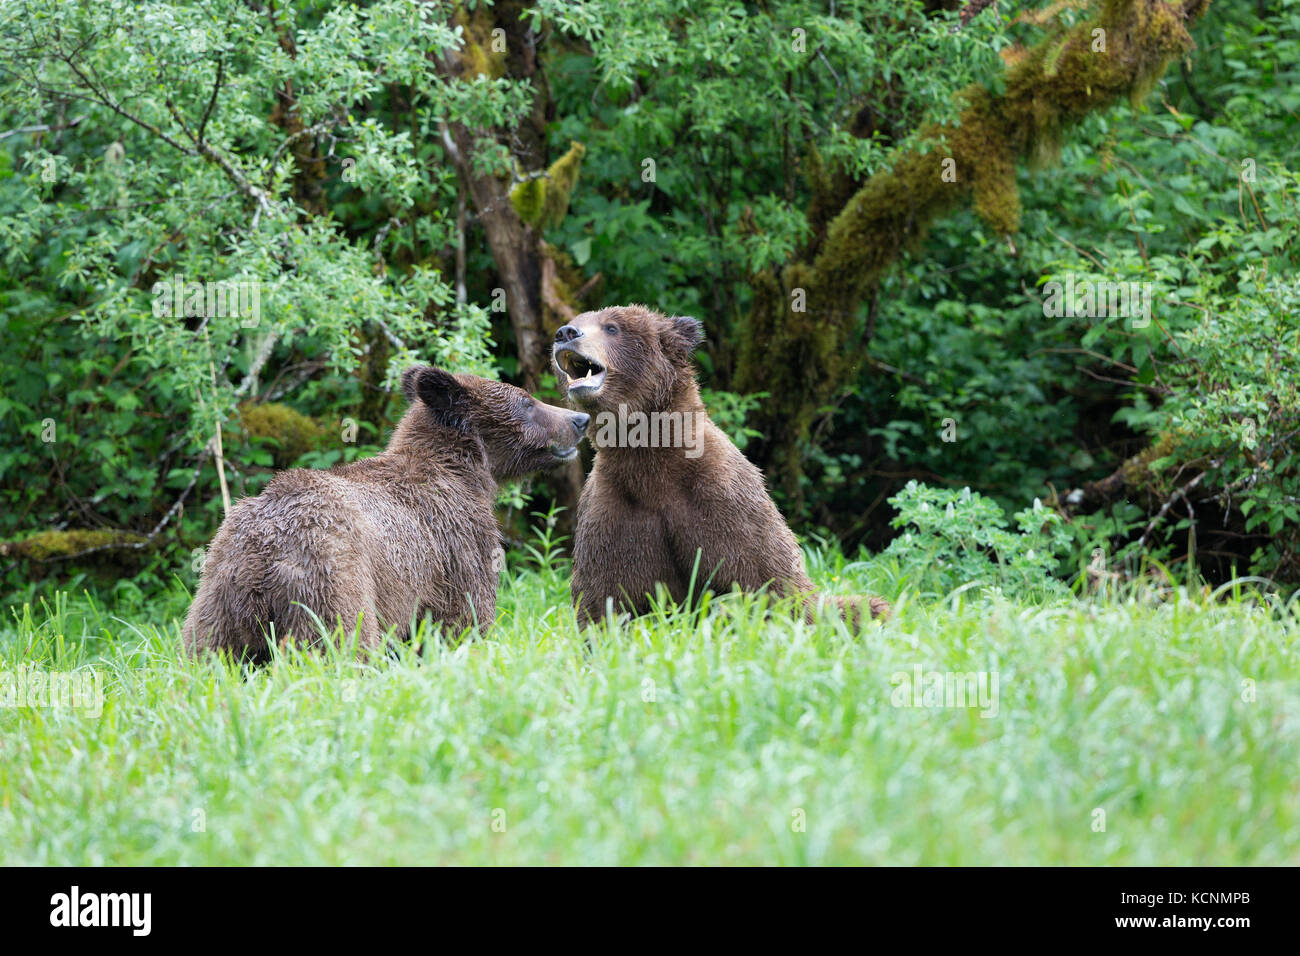 Grizzly bear (Ursus arctos horribilis), young male (right) and female courting, Khutzeymateen Inlet, Khutzeymateen - Stock Image